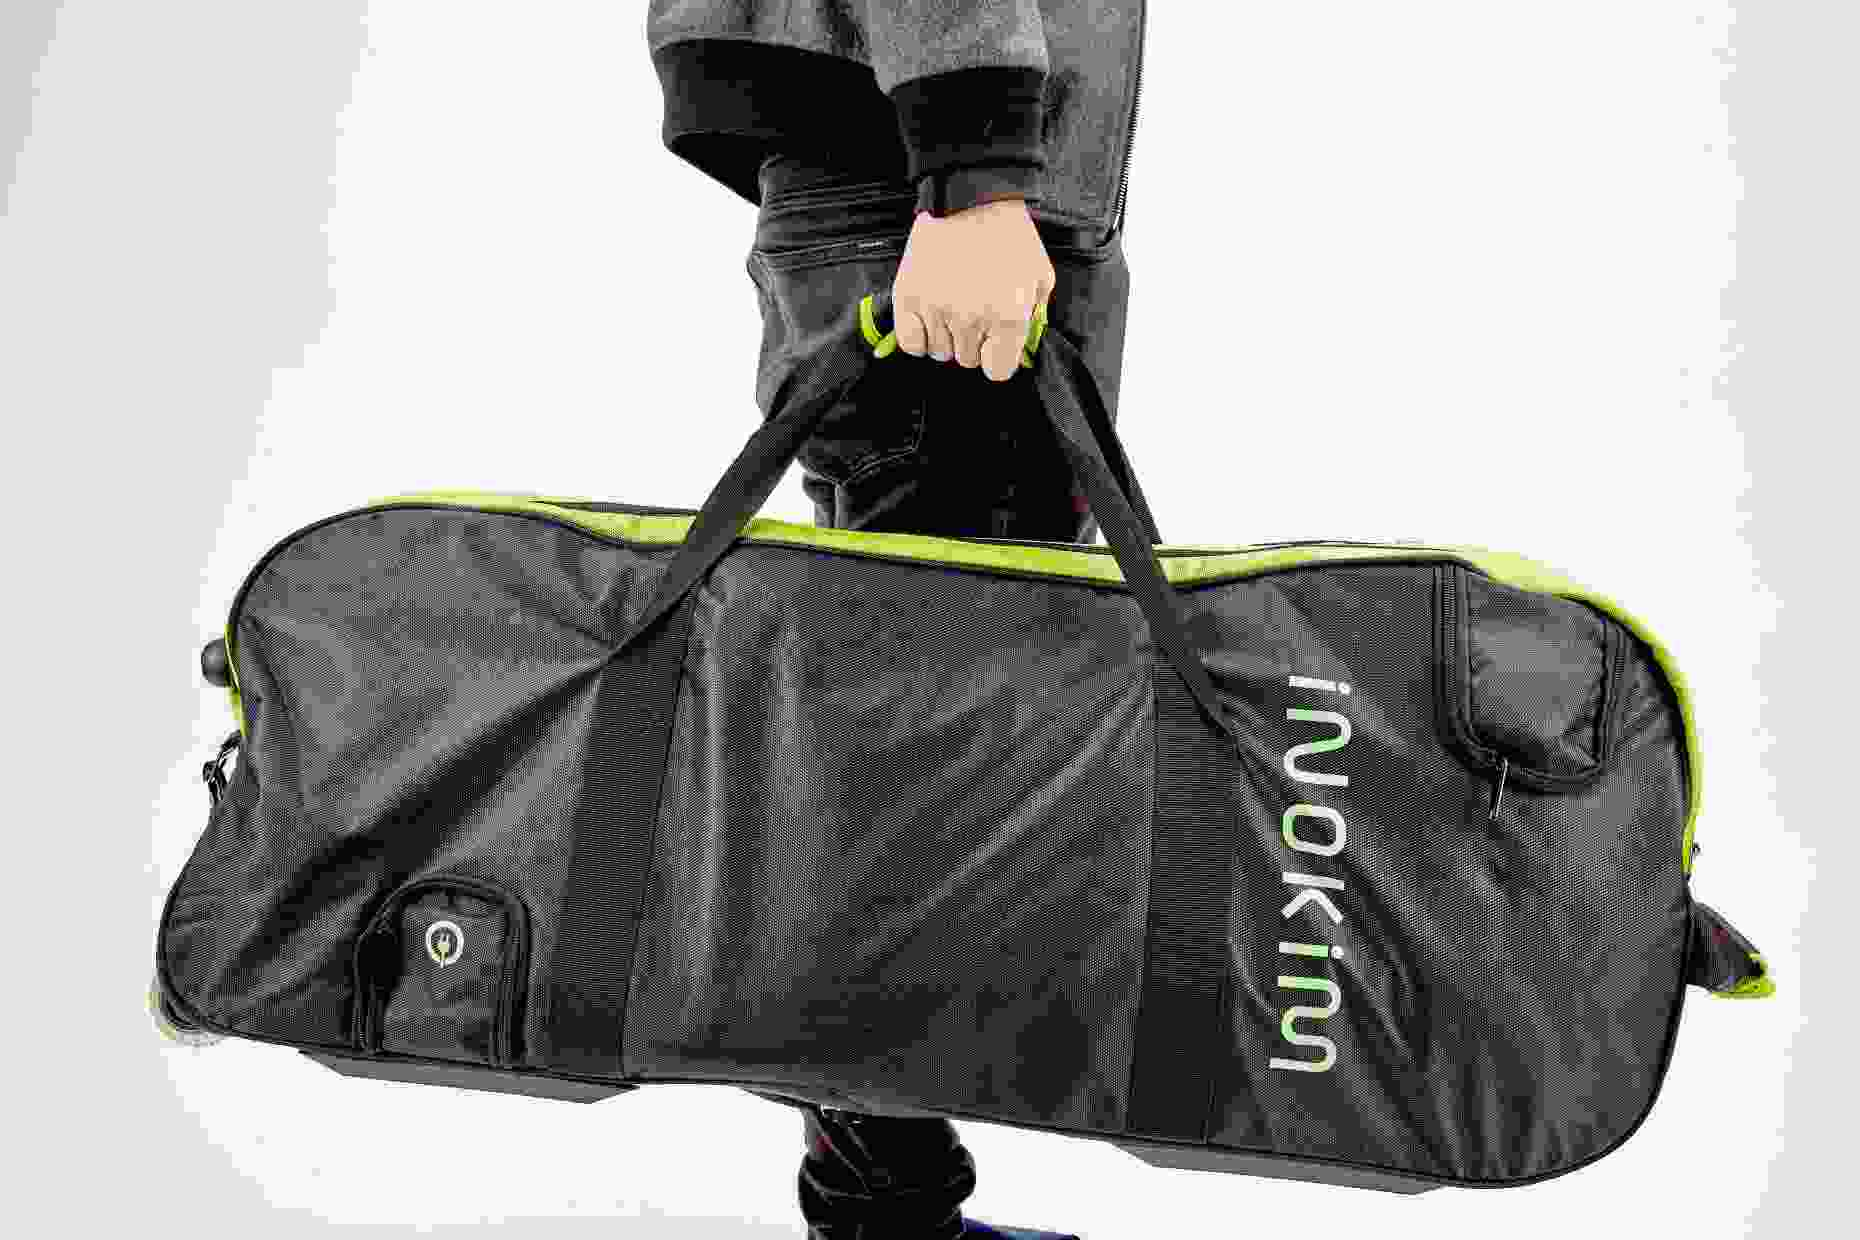 Inokim Light 2 bag